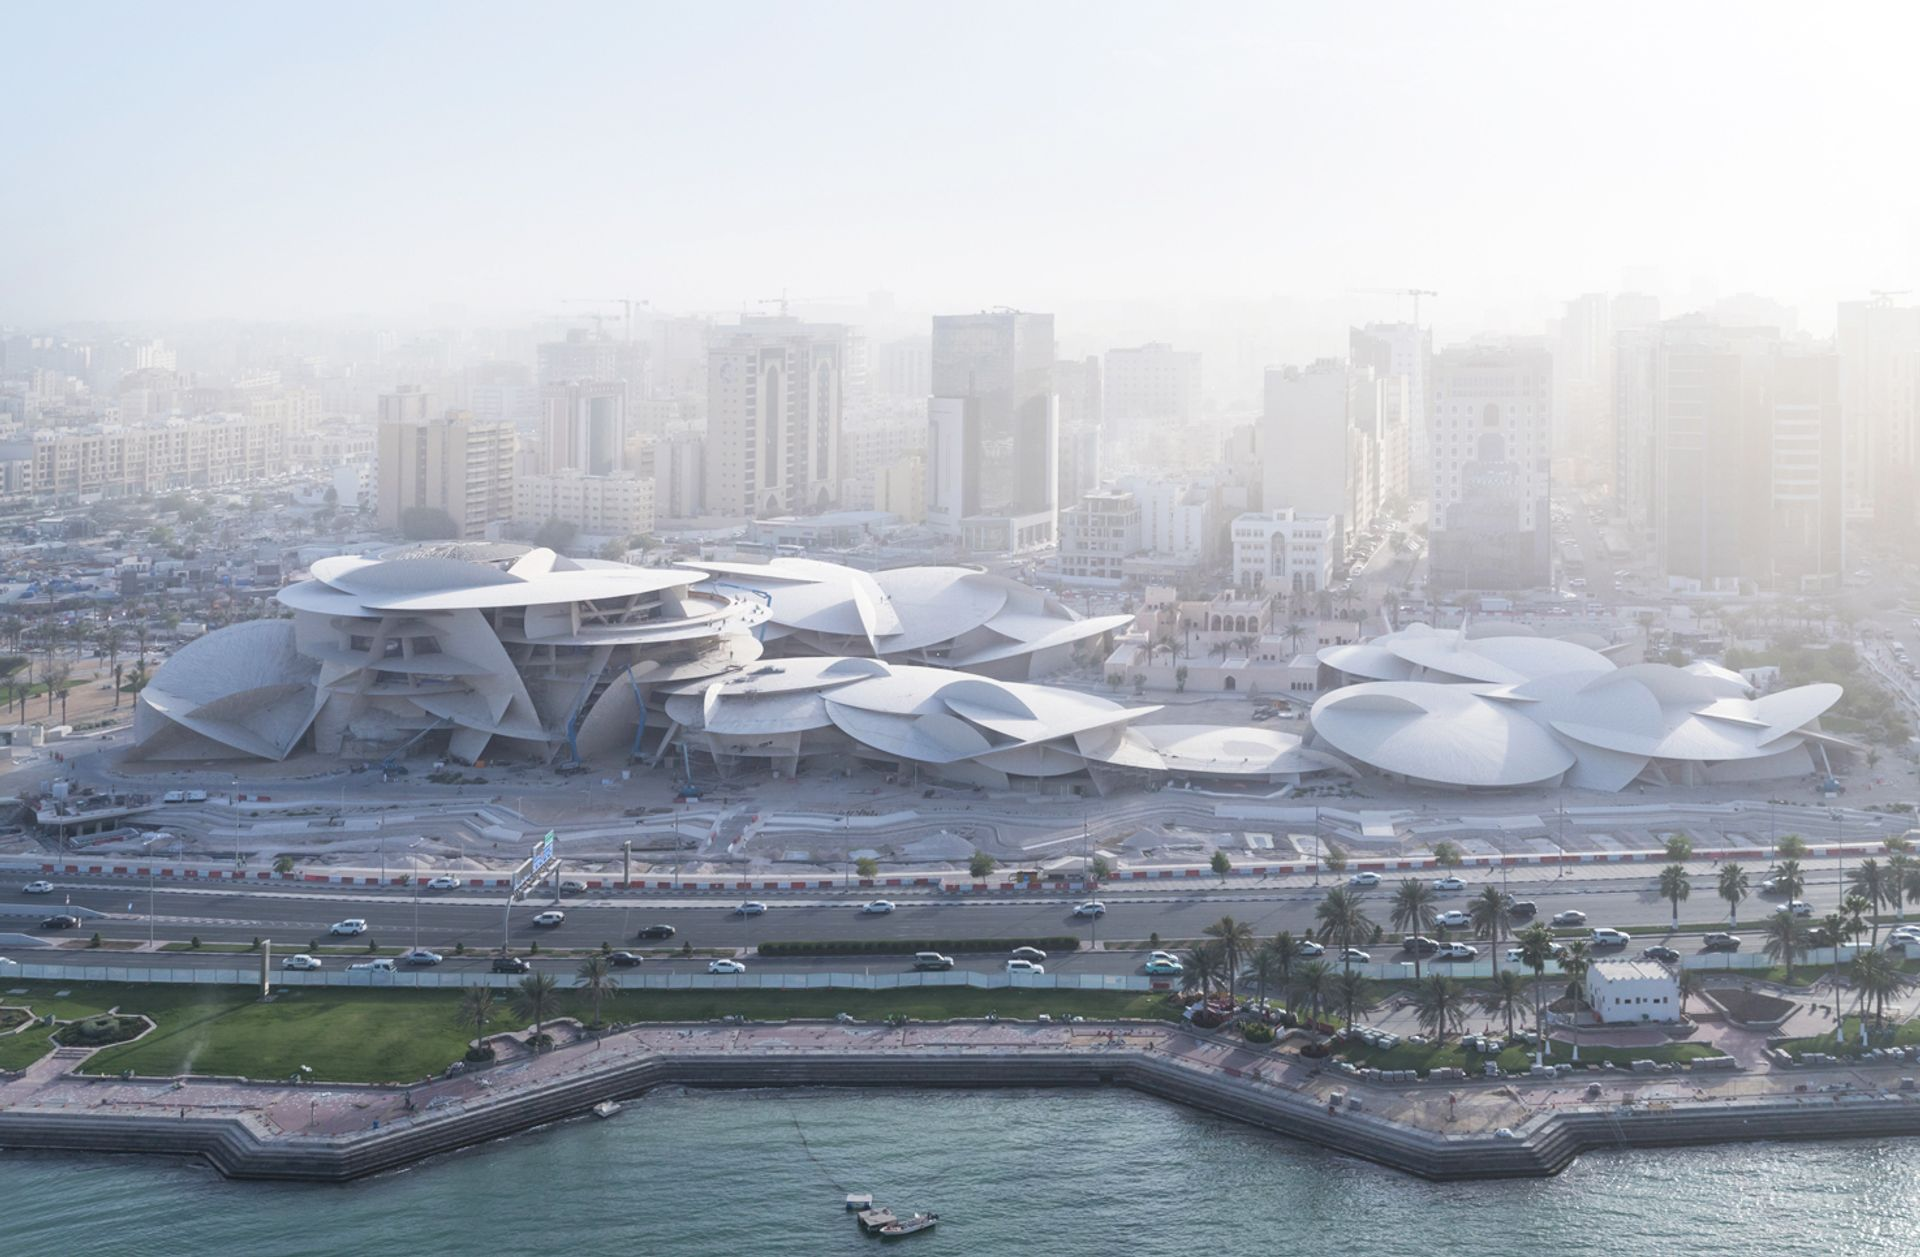 The National Museum of Qatar under construction © Iwan Baan